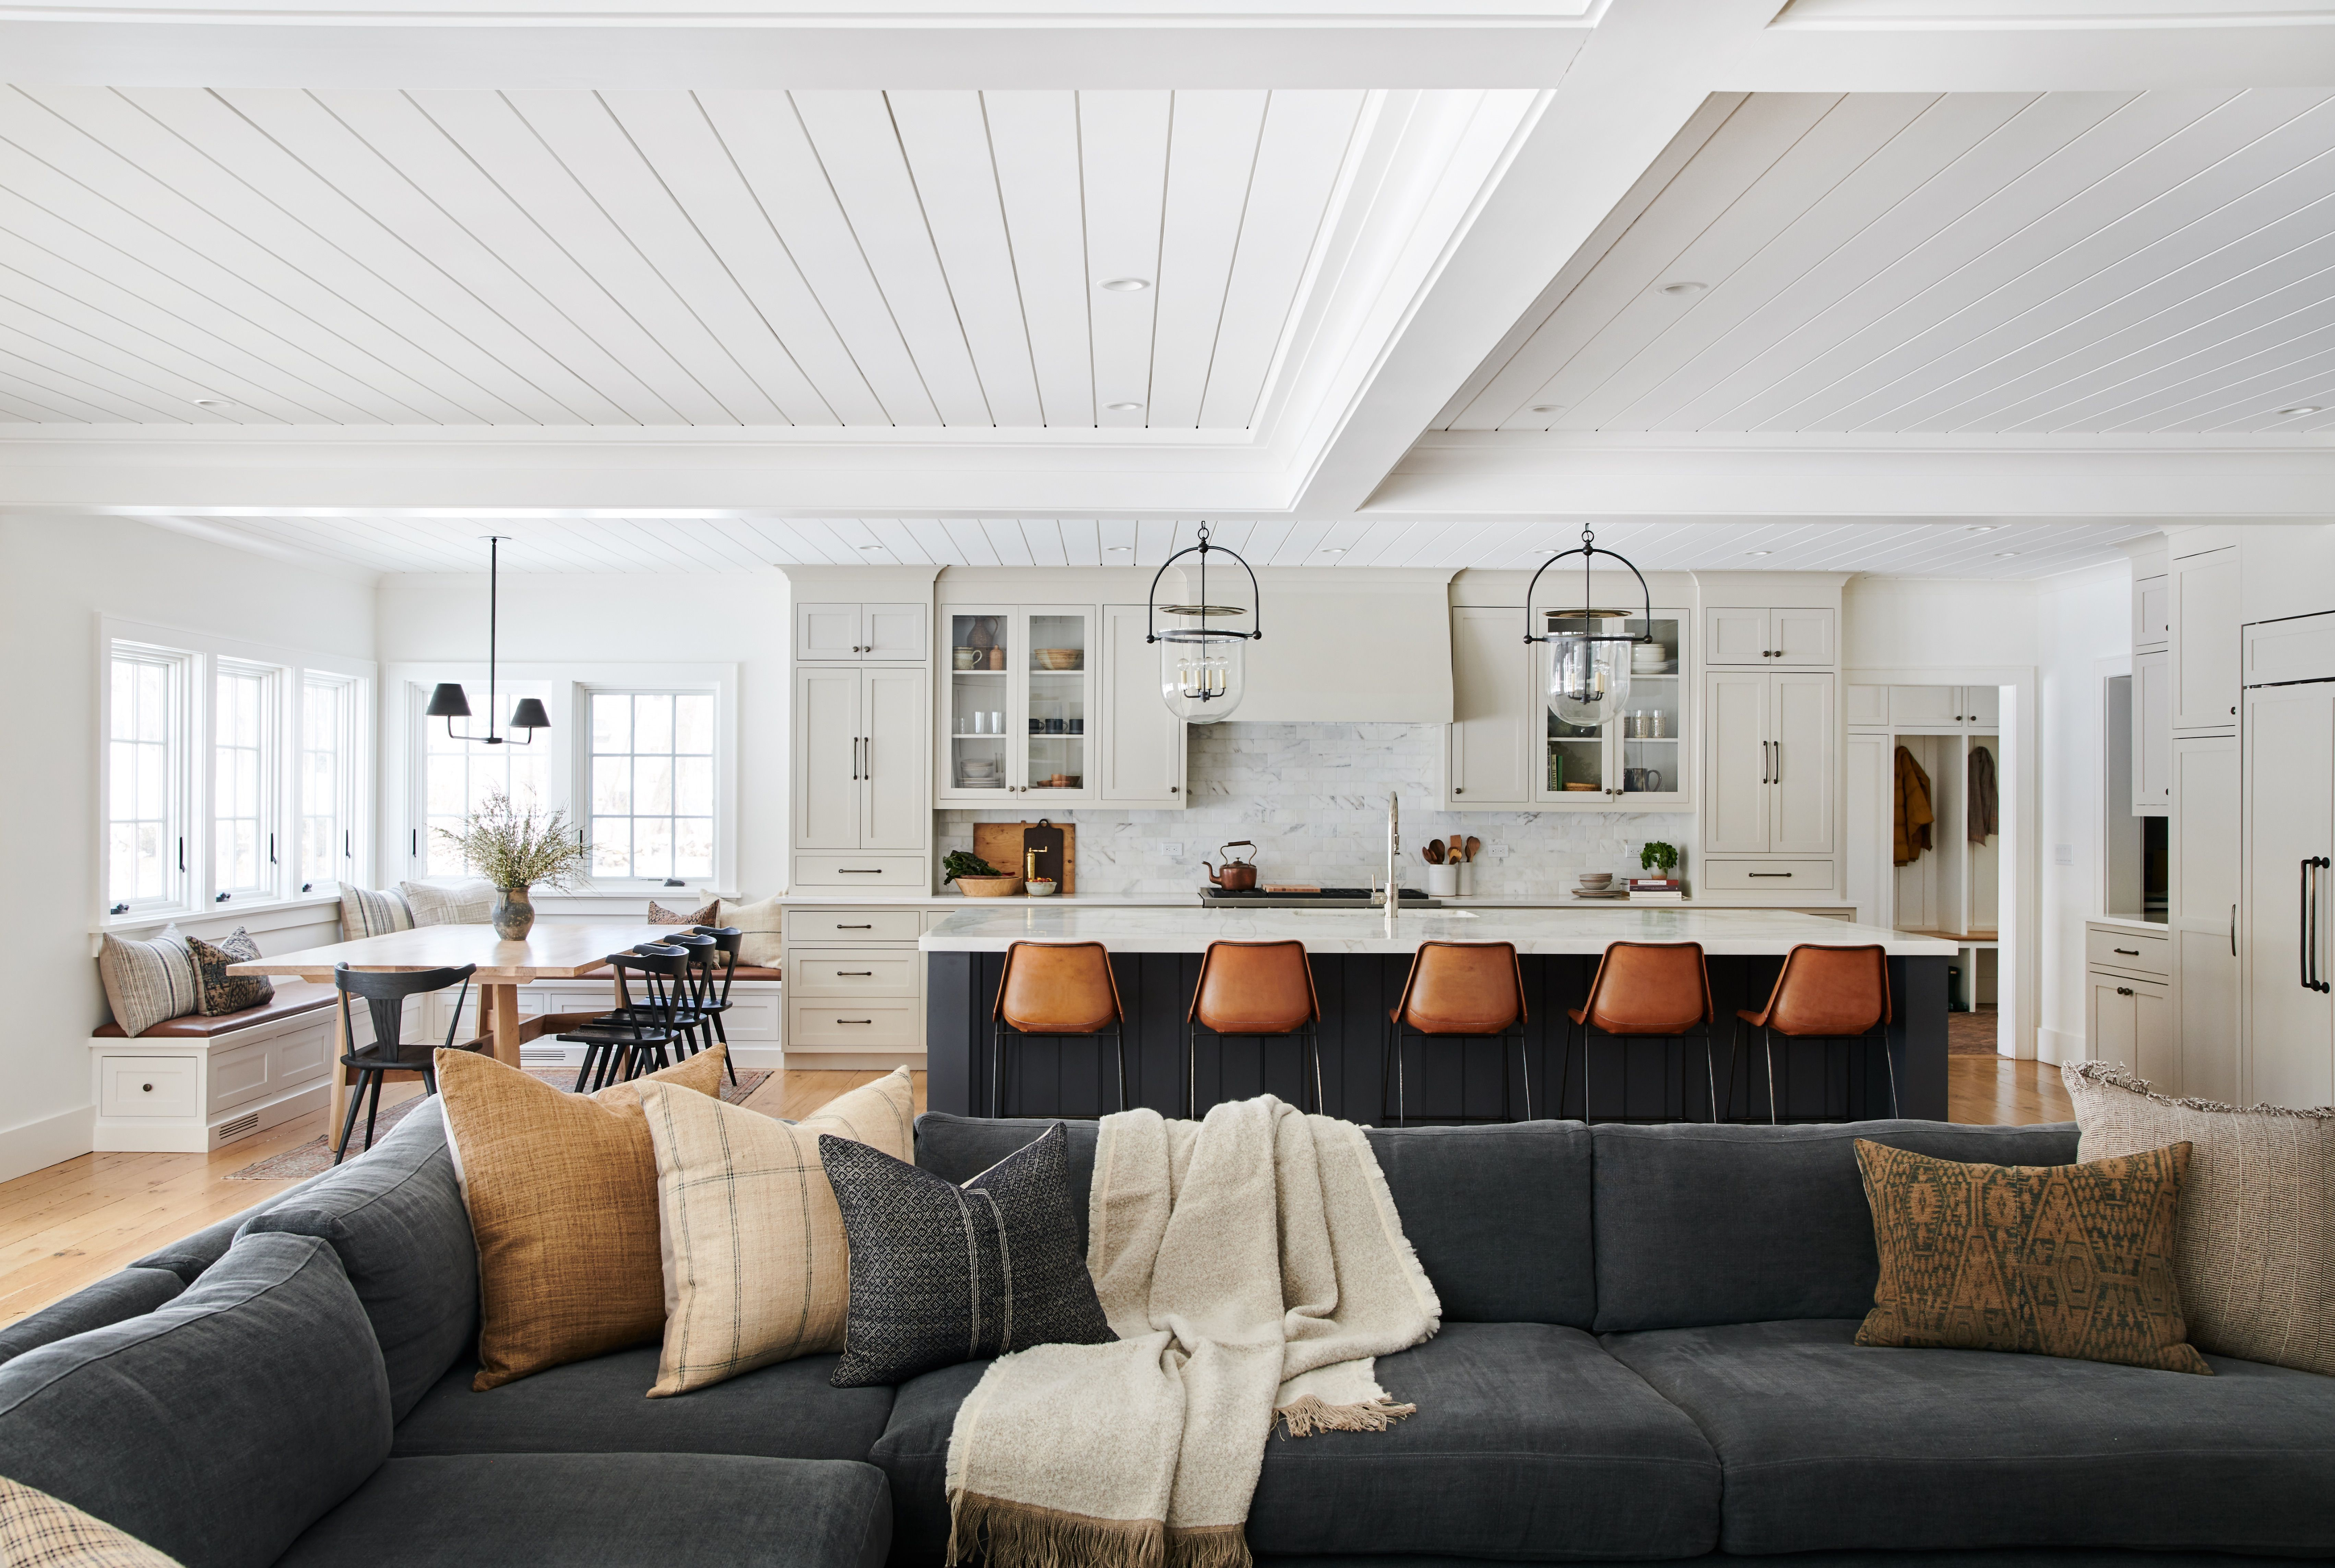 Home living room, House interior, Home, House styles, Interior design, Interior - Client Tupac Meets Biggie To Decorate The Diggies  A Connecticut home designed by Amber Lewis, founder and principal d -  #Homeliving #room